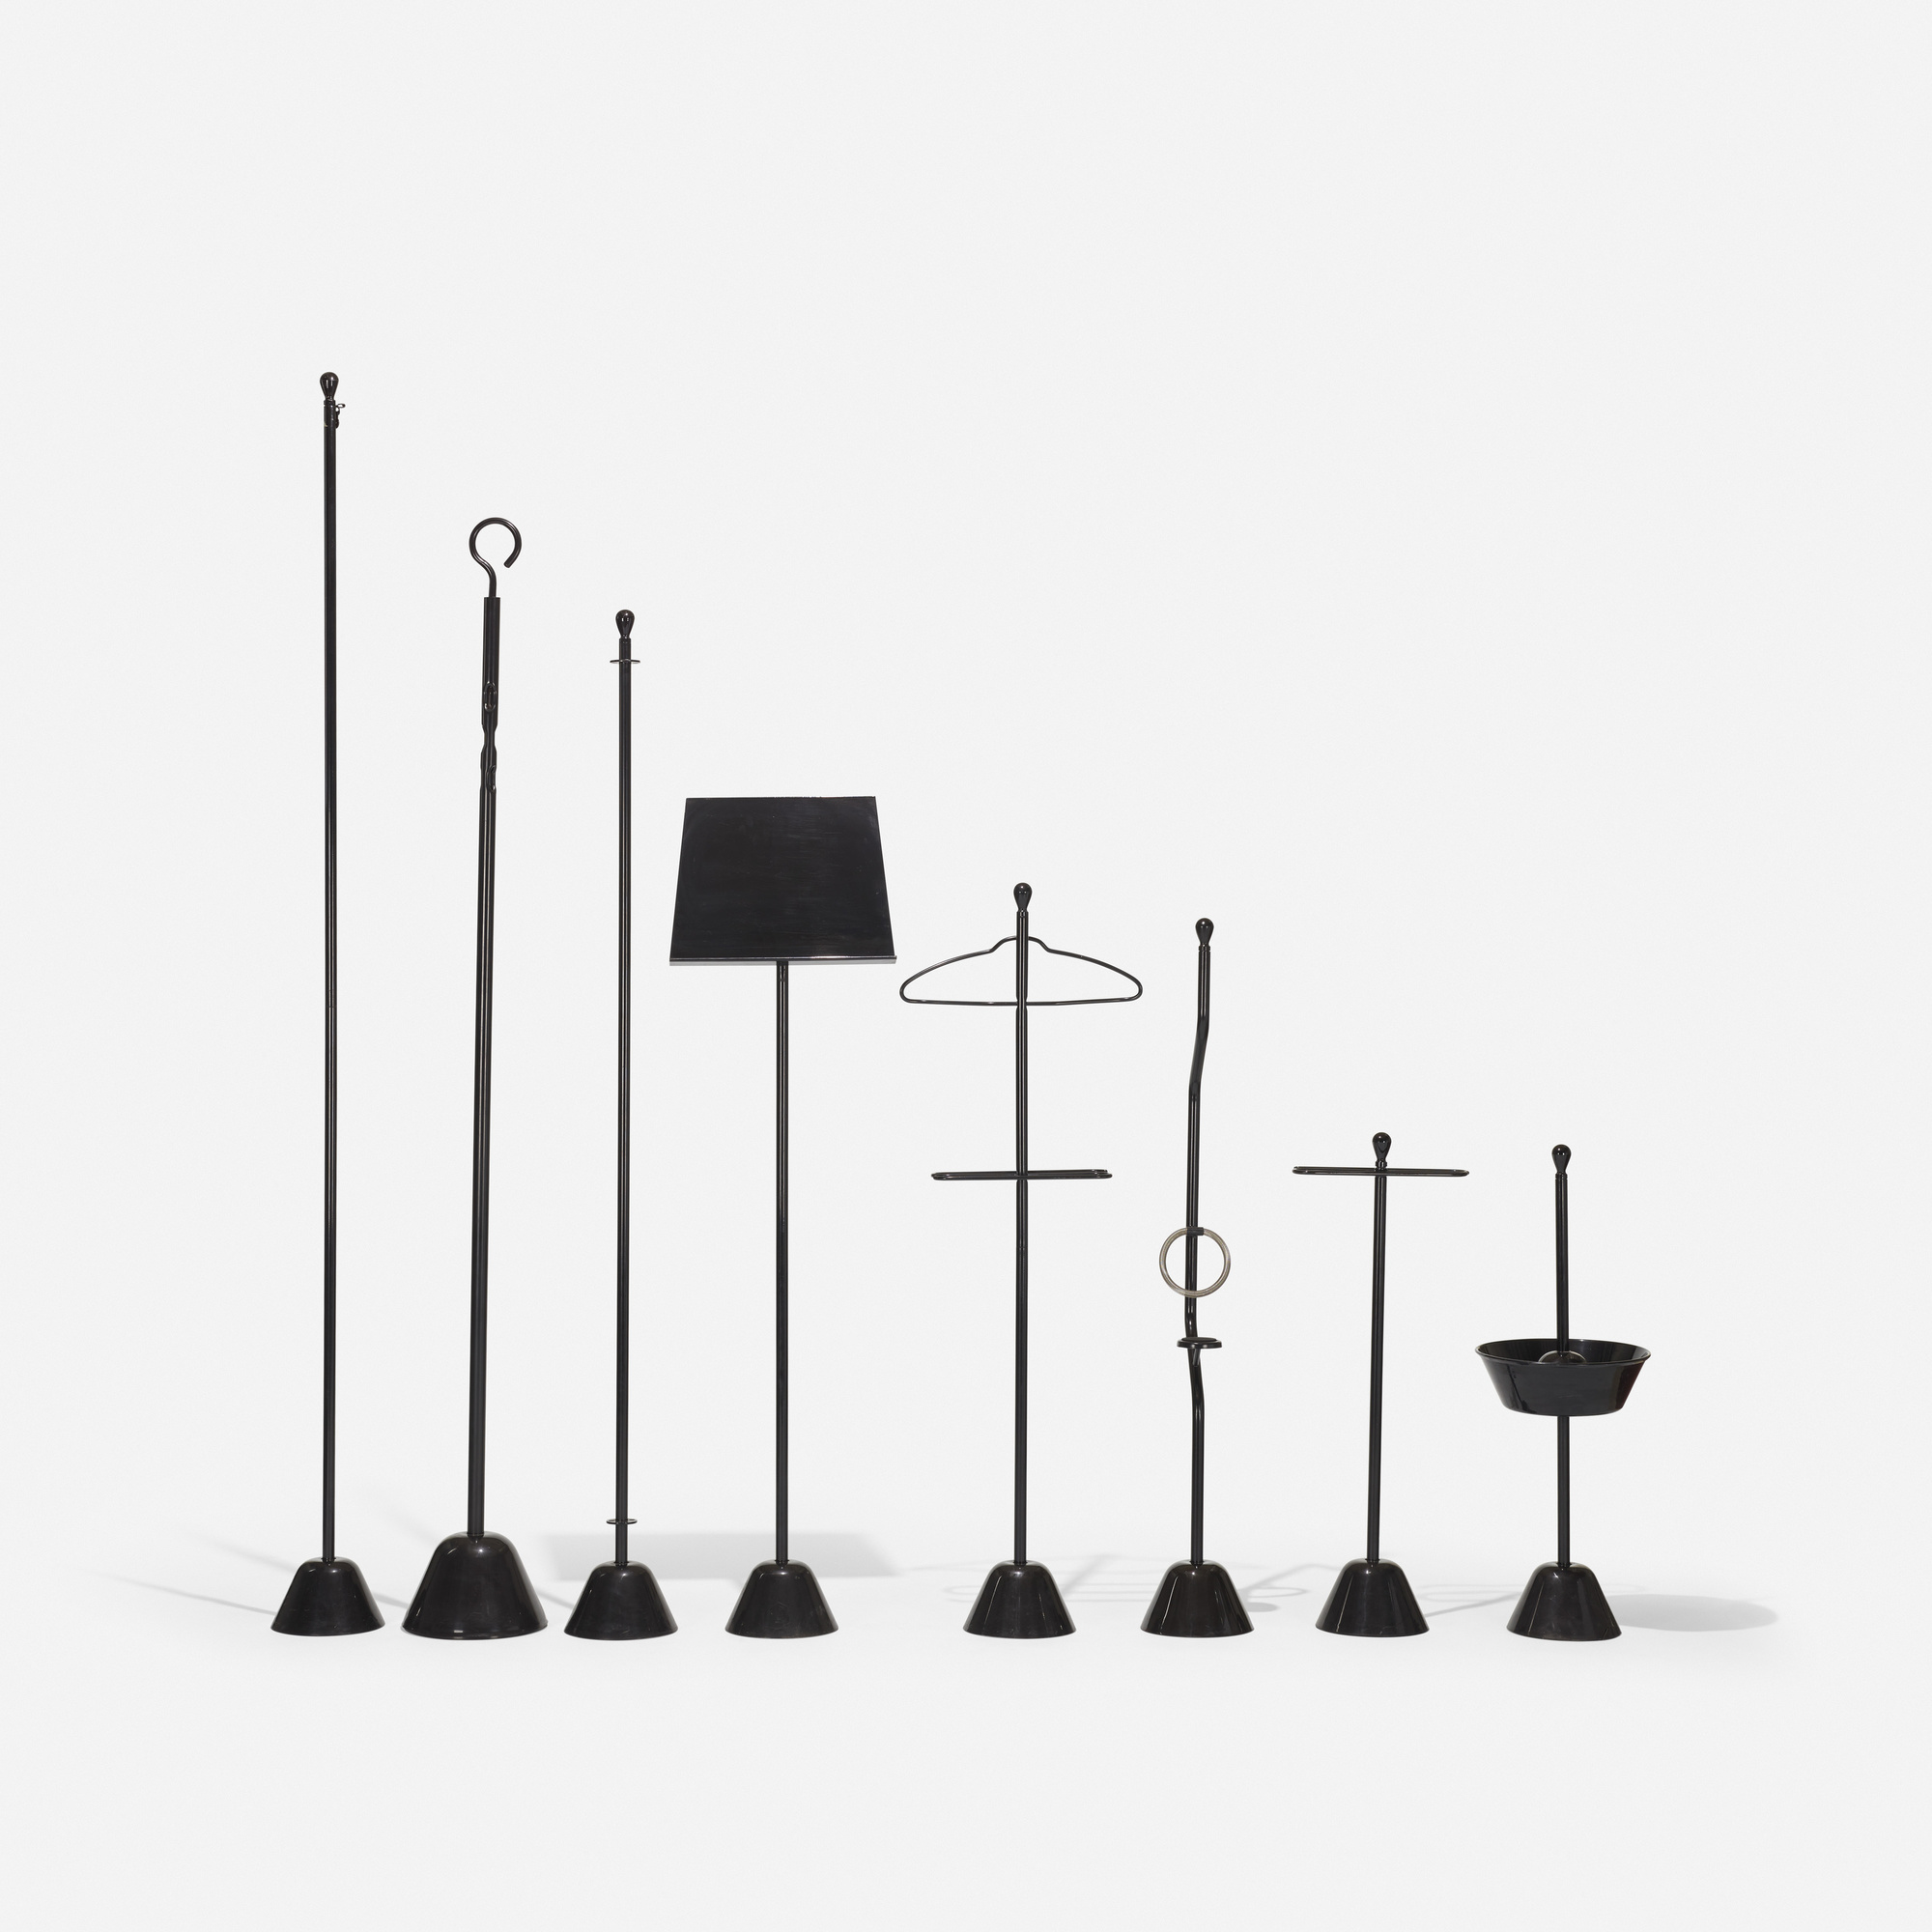 372: Achille and Pier Giacomo Castiglioni / collection of accessories from the Servi series (1 of 2)